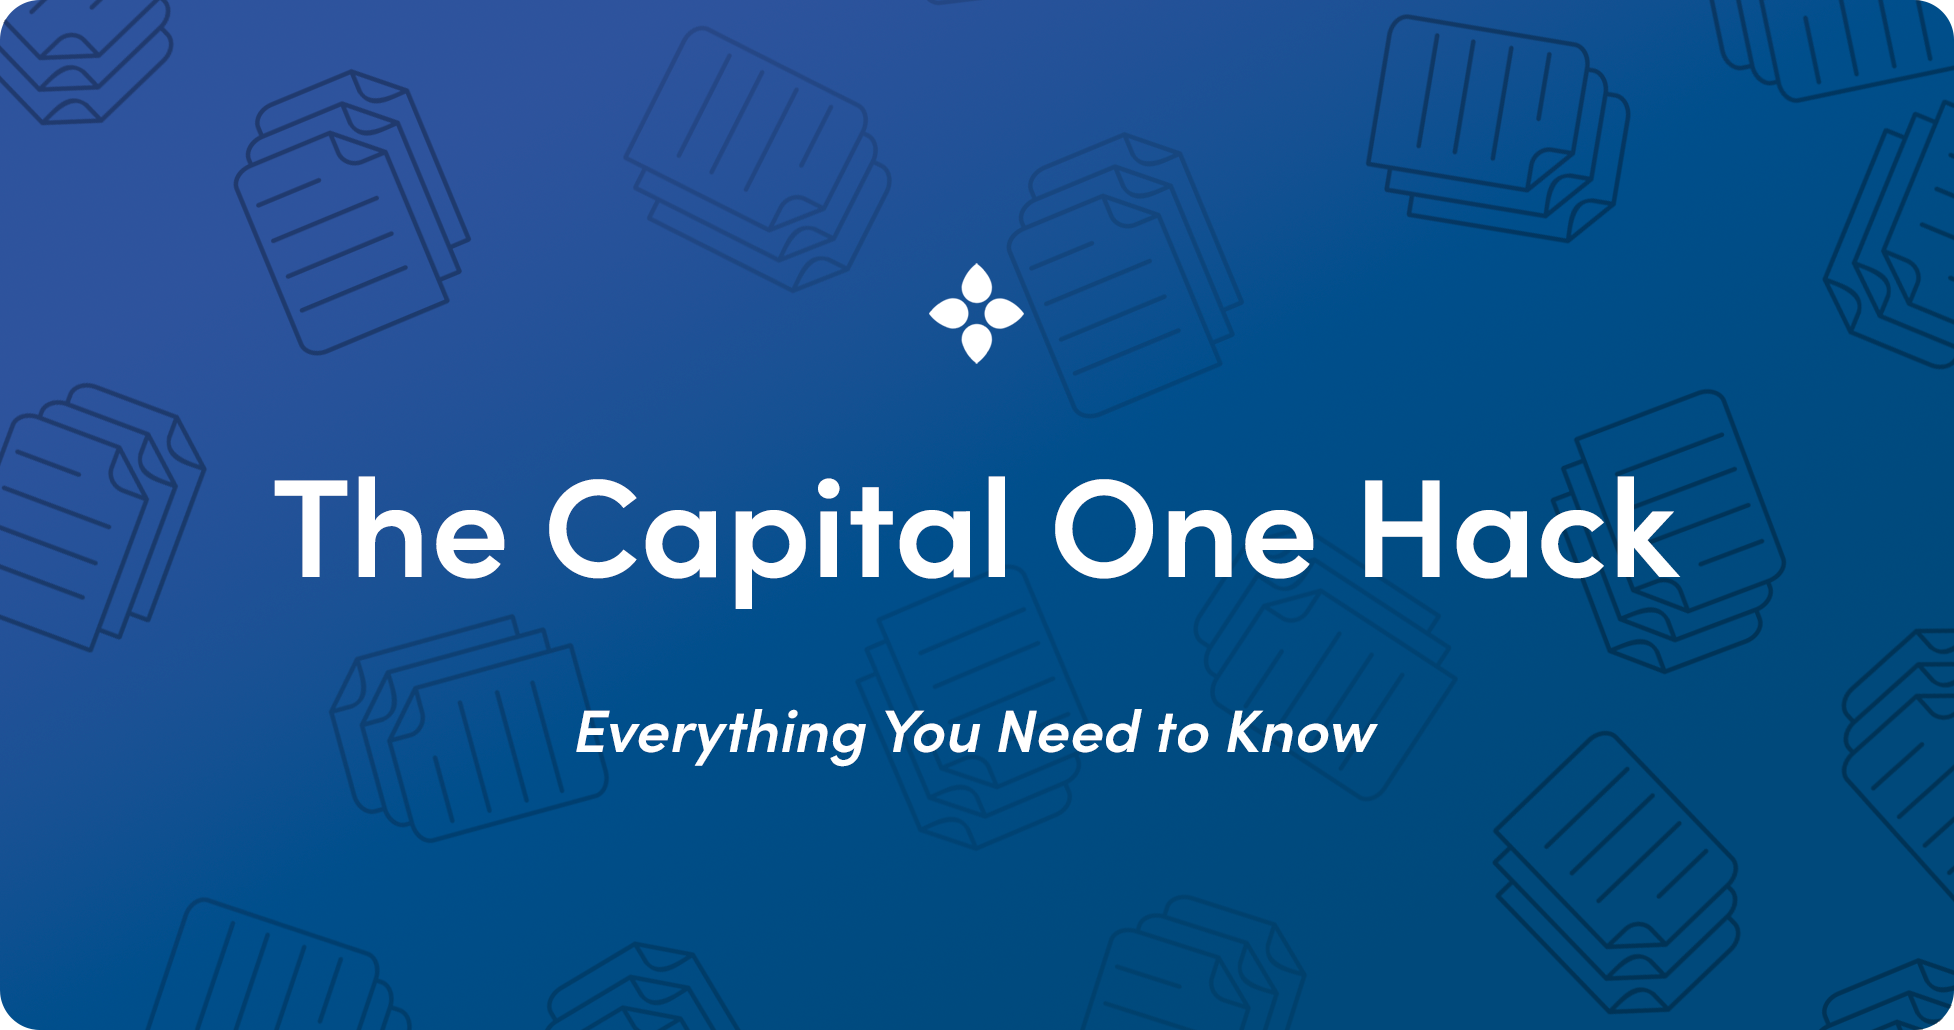 Personal Data of 106 Million People Stolen in Capital One Data Breach